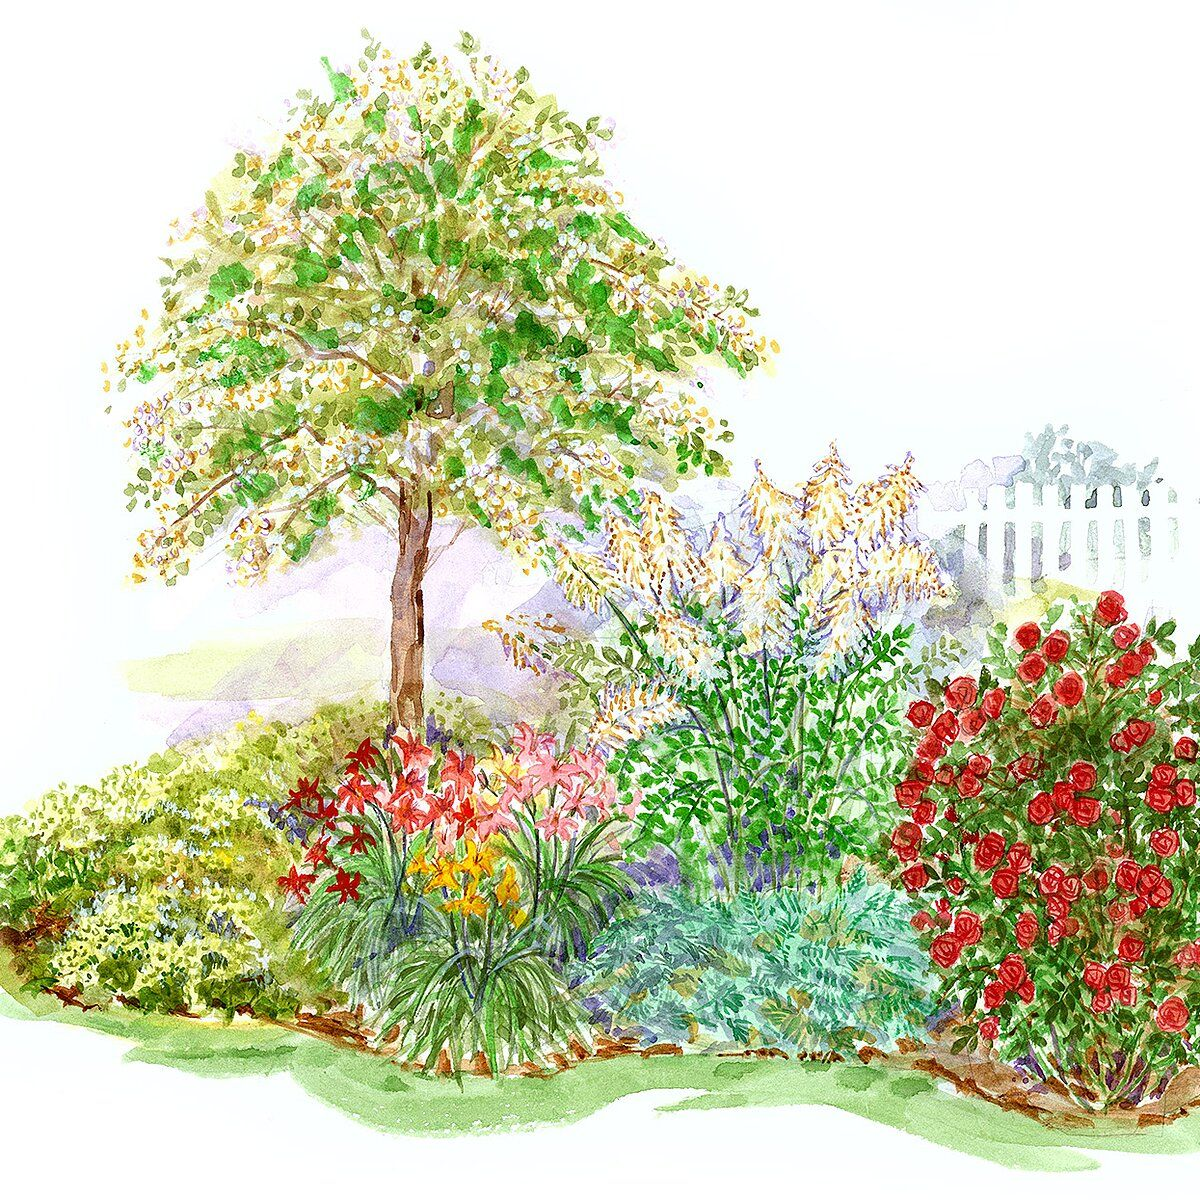 Photo of Create a Welcoming Look for Your Home with This Foolproof Foundation Garden Plan